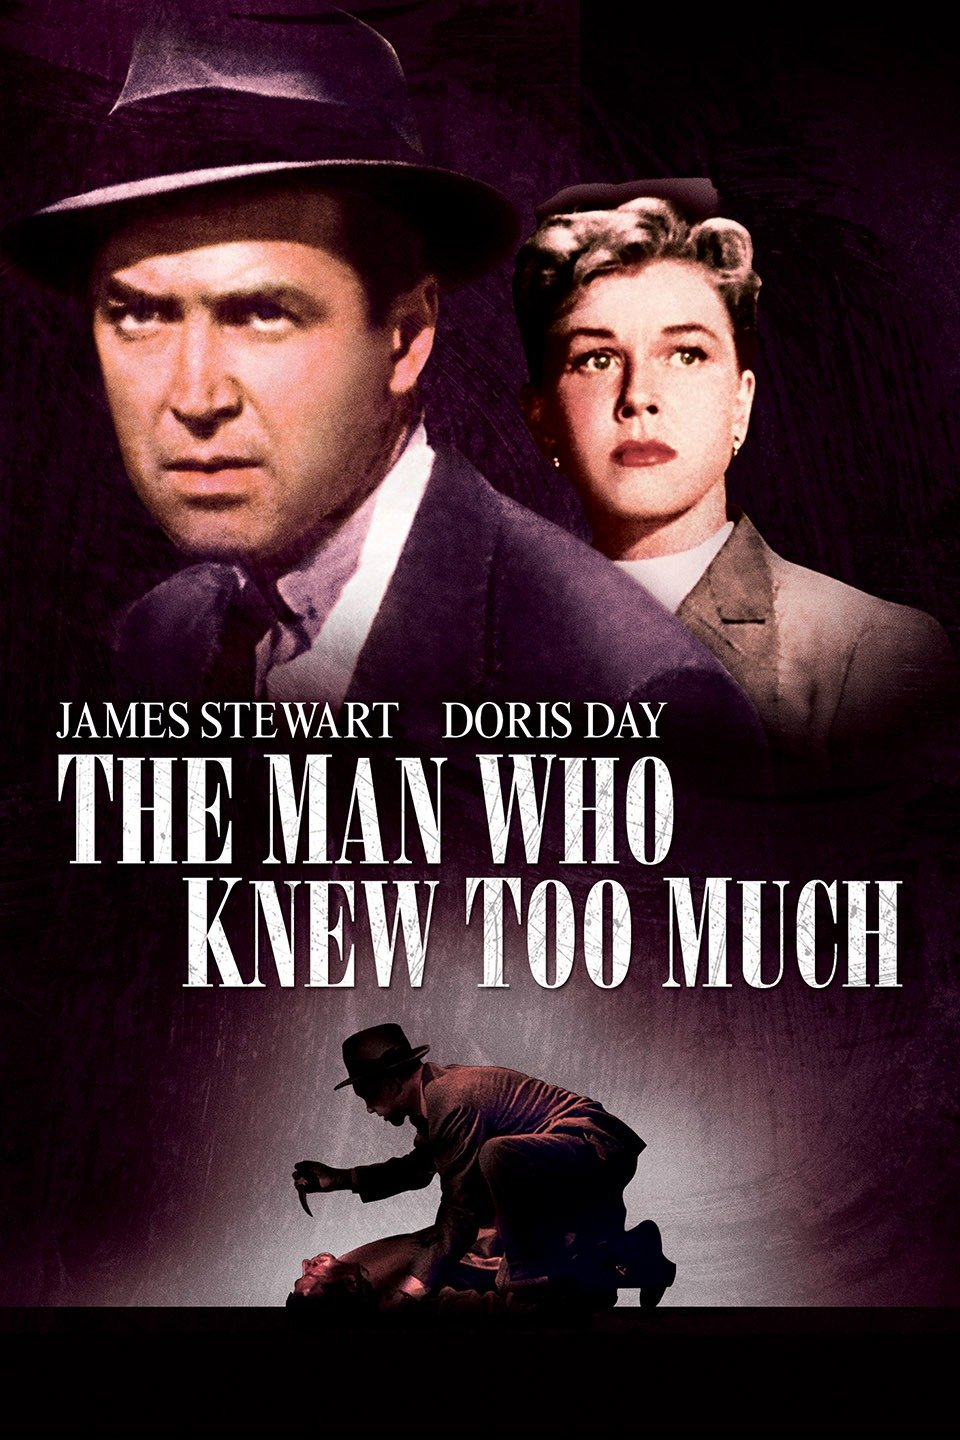 Movies @ Middletown: The Man Who Knew Too Much